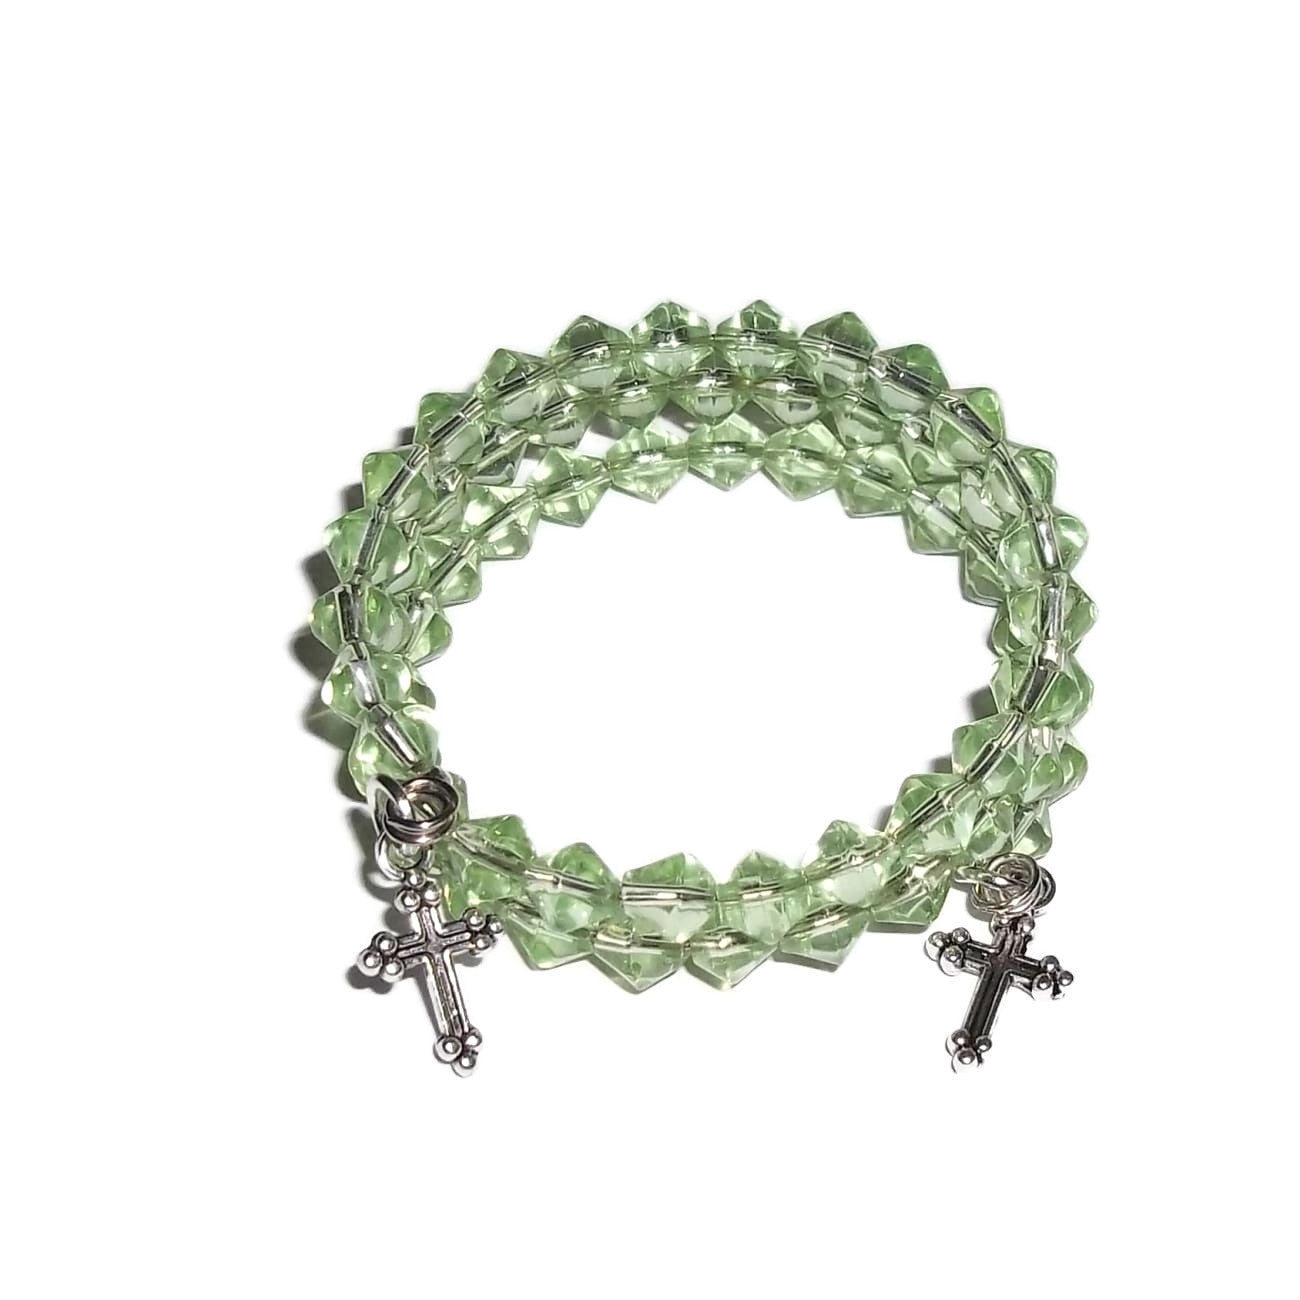 Children's Crosses Peridot Green August Birthstone Hand CraftedGlass Beaded Wrap Bracelet